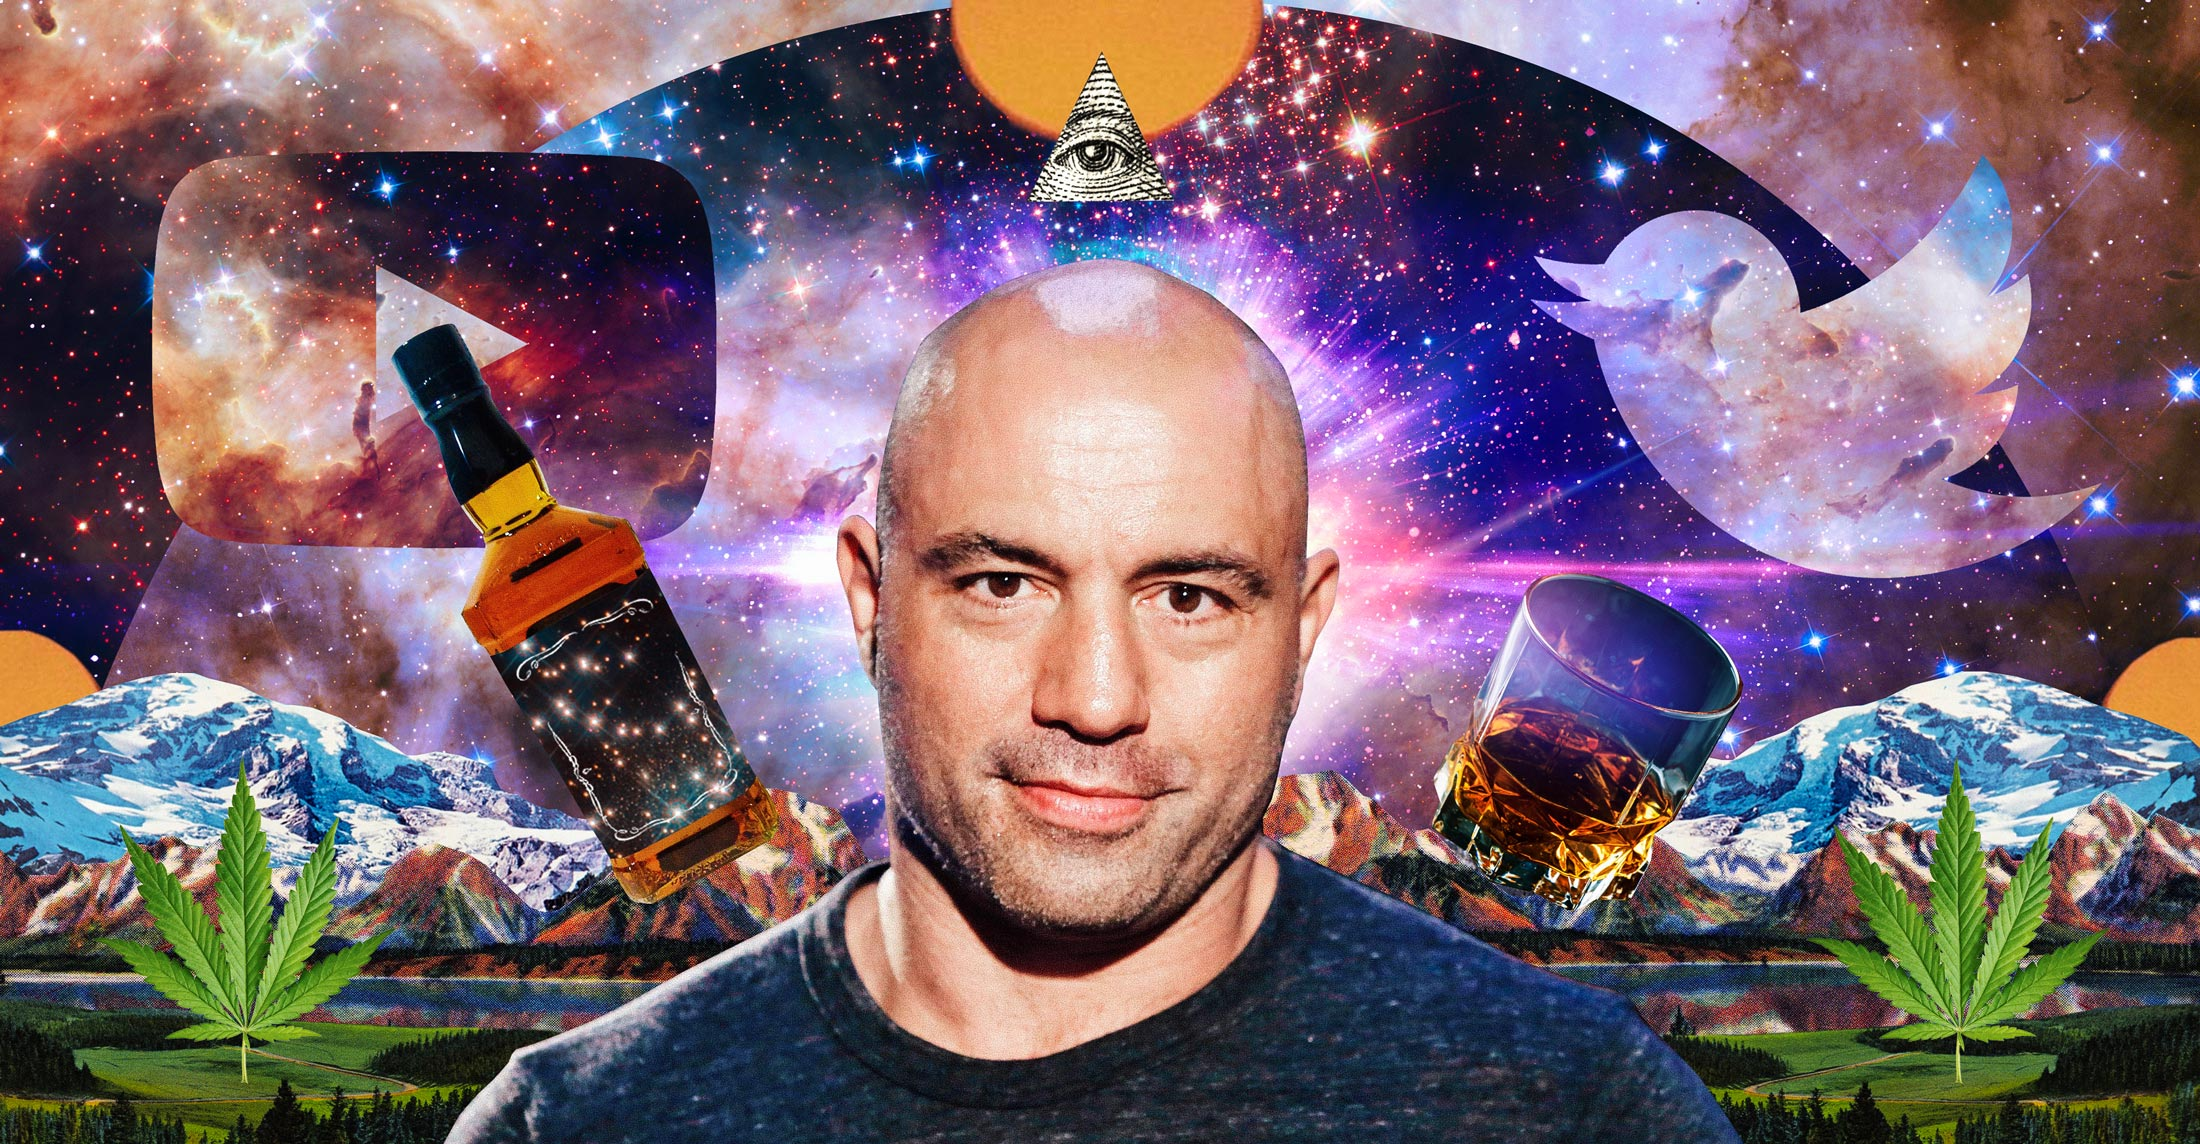 db02ed900 Joe Rogan in a spectacular fantasy galaxy landscape, flanked by celestial  whiskey and massive pot